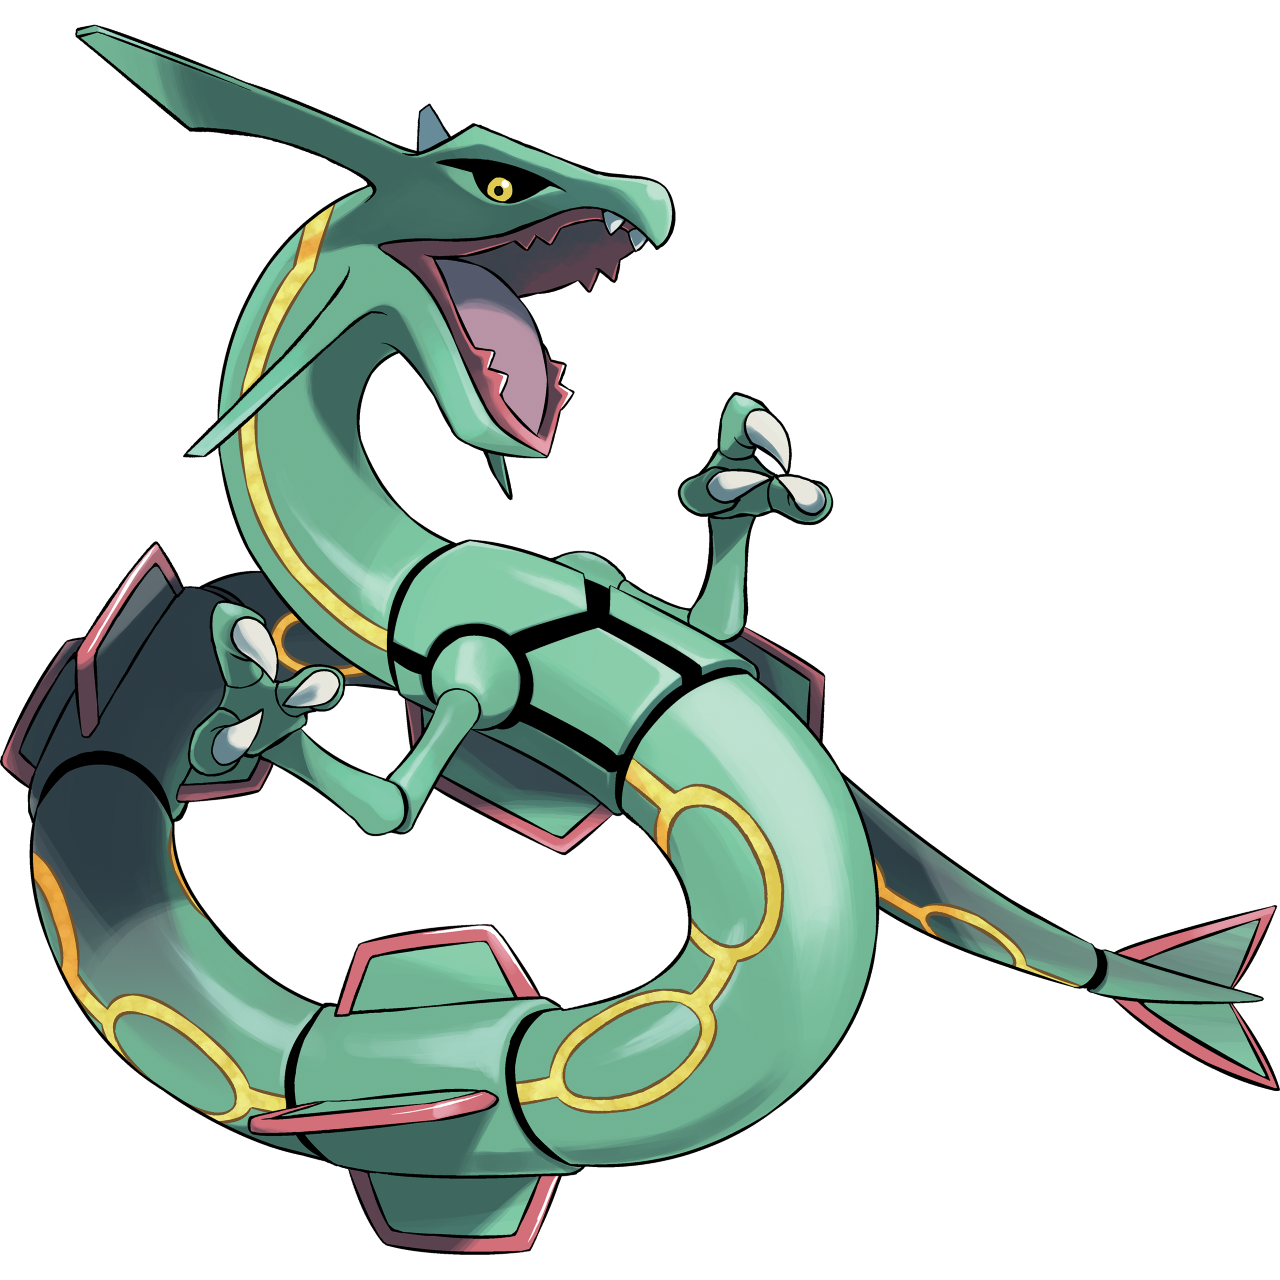 Day favorite legendary is. Rayquaza transparent aura image royalty free download